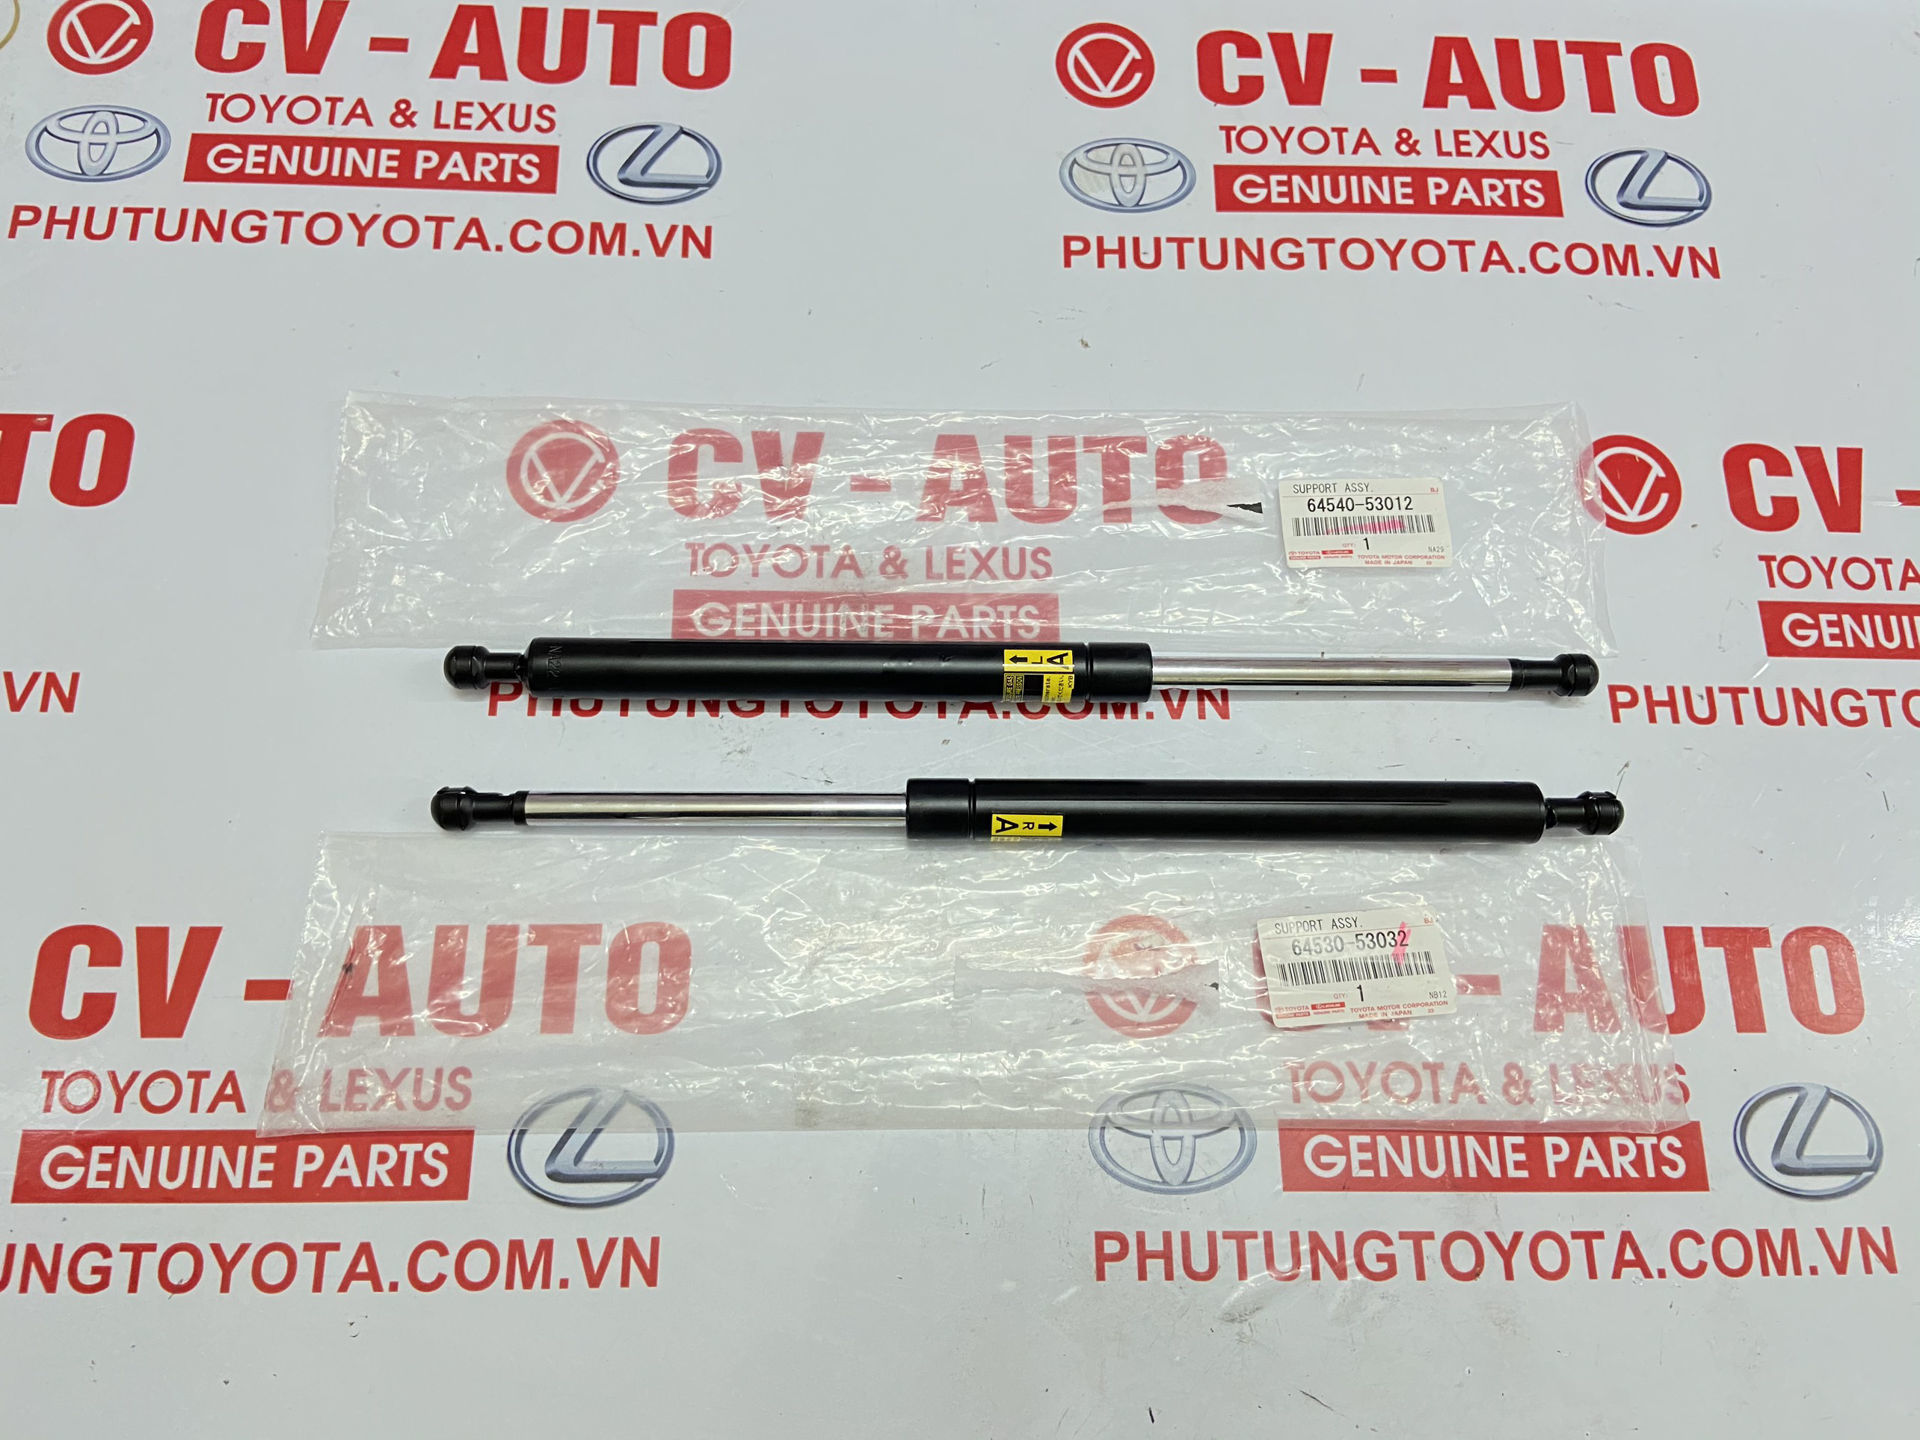 Picture of 64540-53012 64530-53032 Ti chống cốp Lexus IS250C